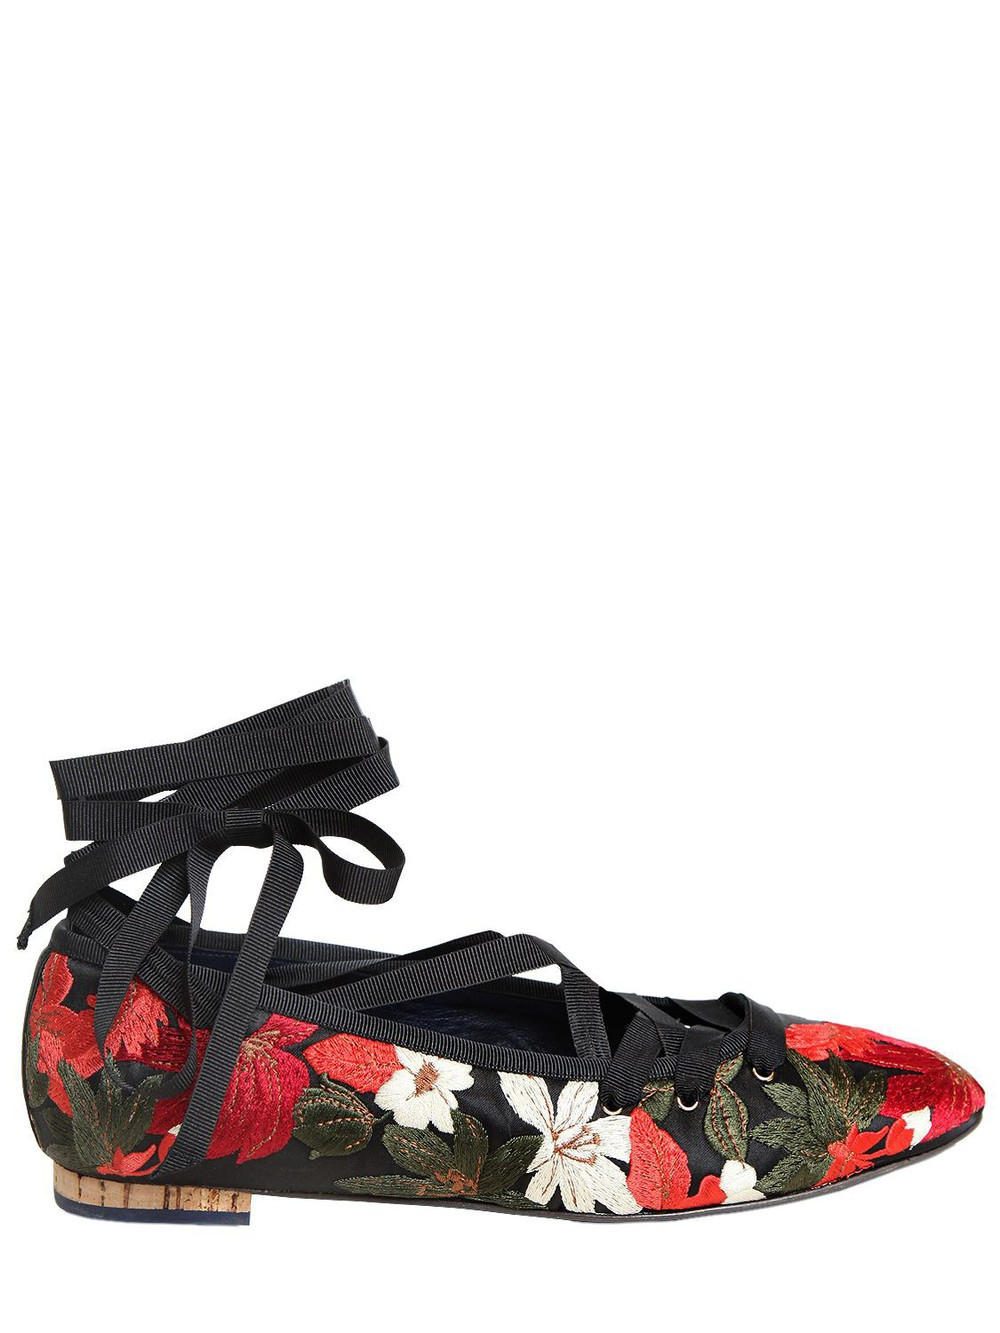 PALOMA BARCELÒ 10mm Embroidered Satin Lace Up Flats in black / red / white